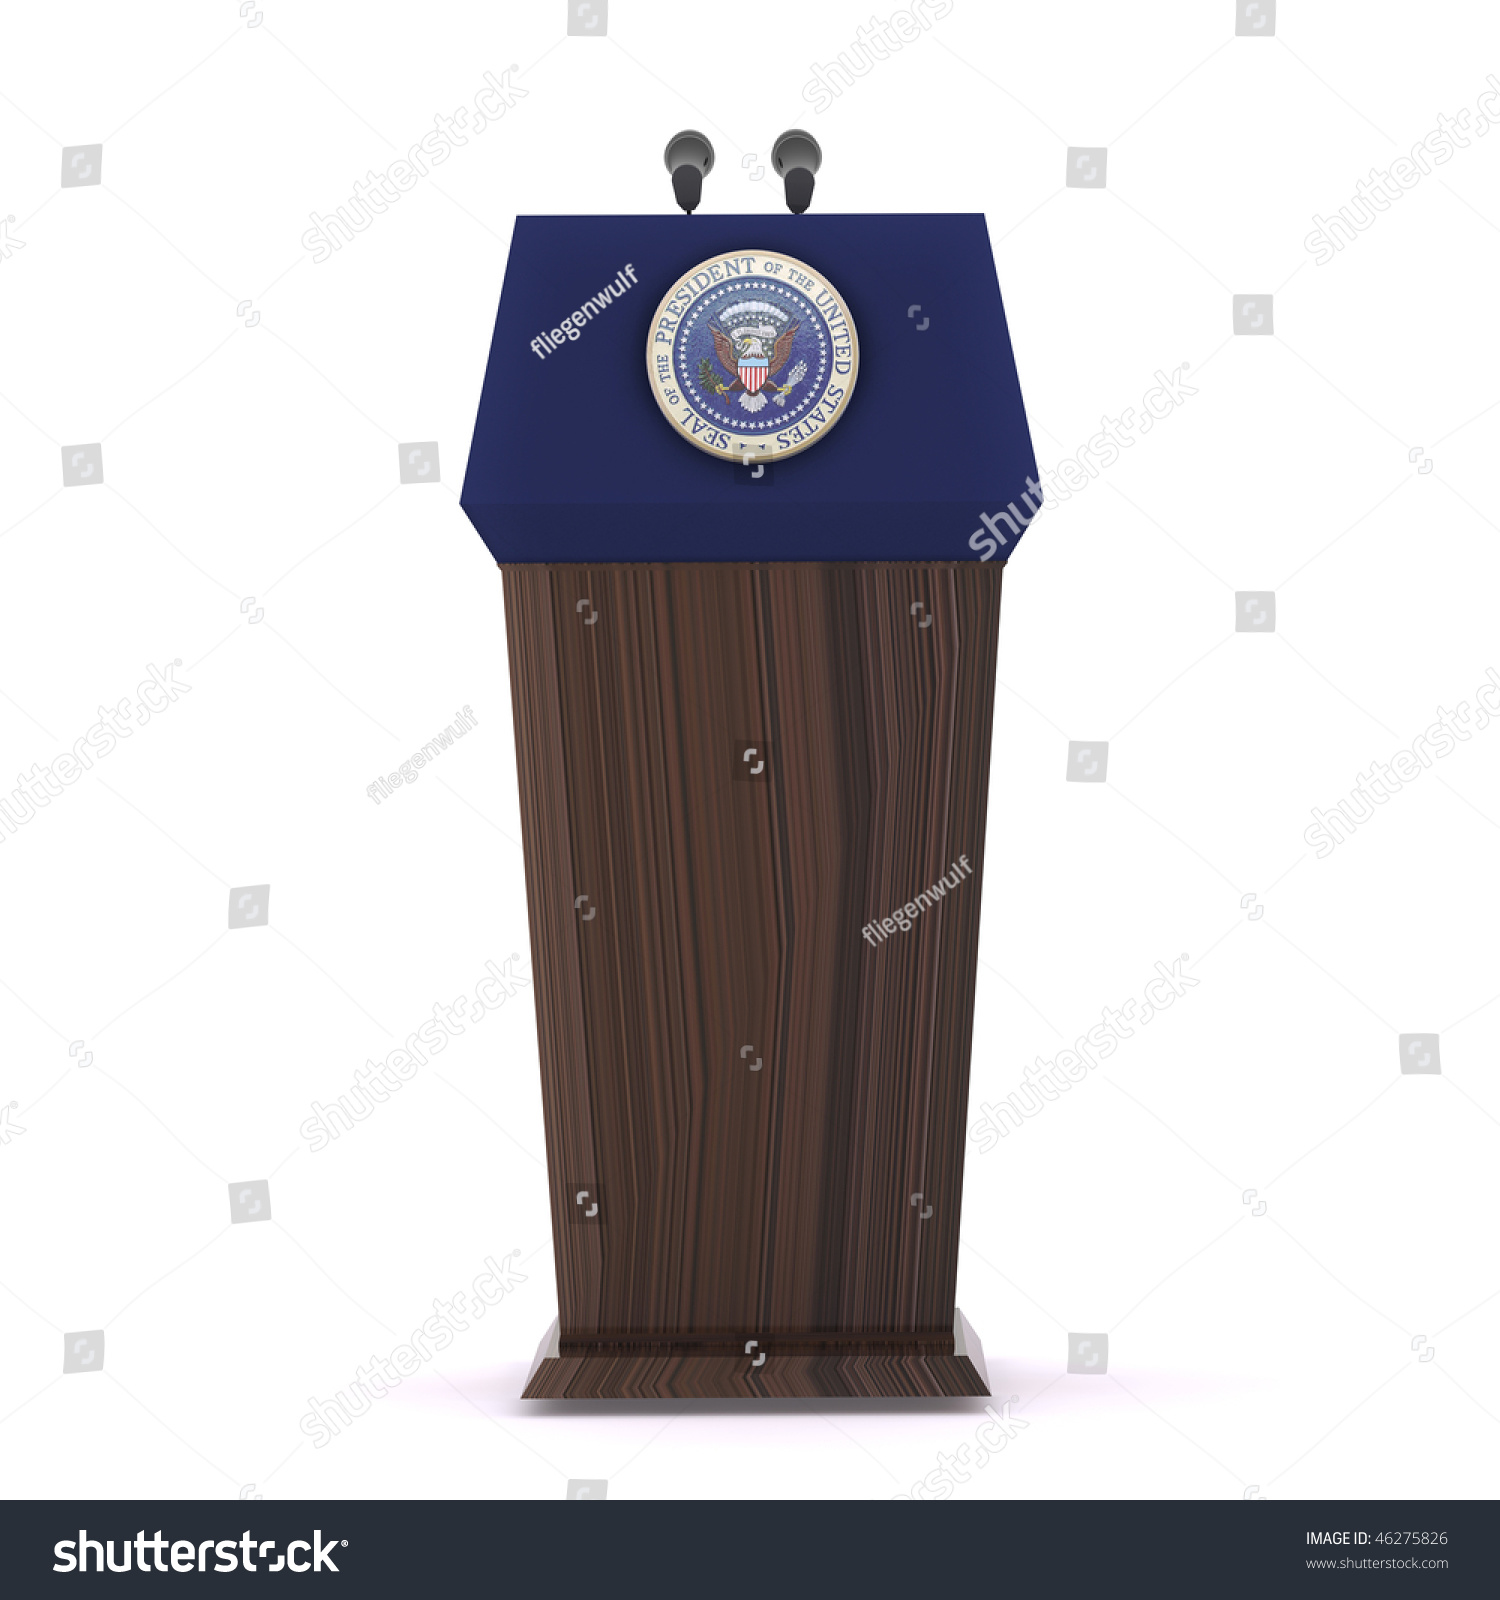 Find presidential seal Stock Images in HD and millions of other royaltyfree stock photos illustrations and vectors in the Shutterstock collection Thousands of new highquality pictures added every day